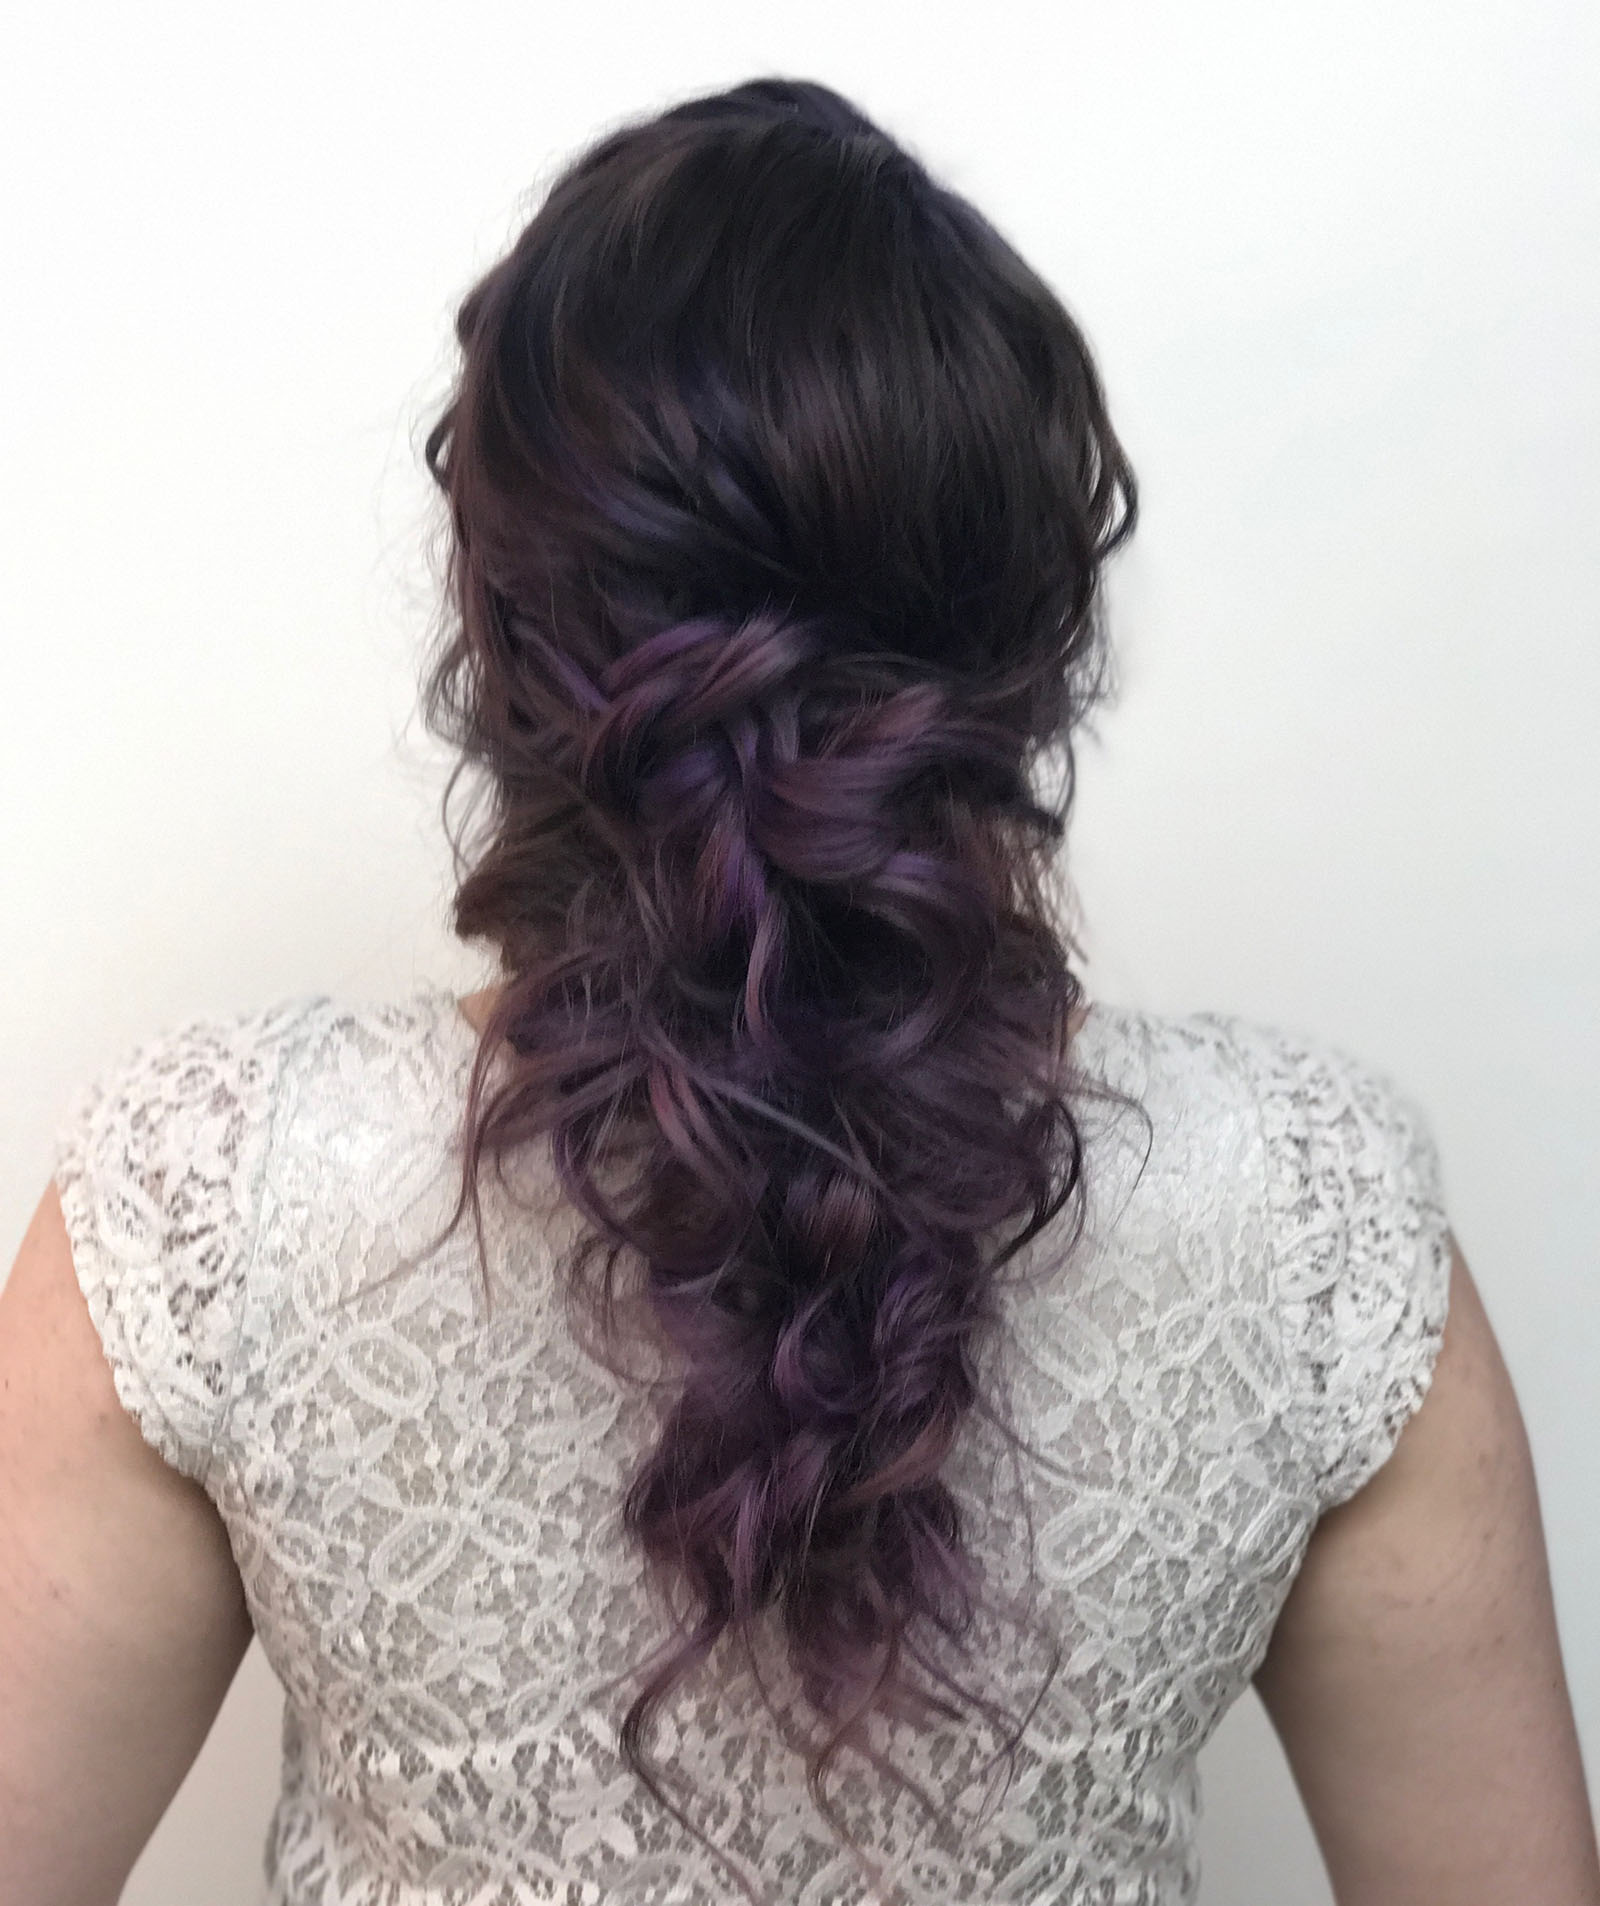 Bridal Hair And Makeup Packages Near Me